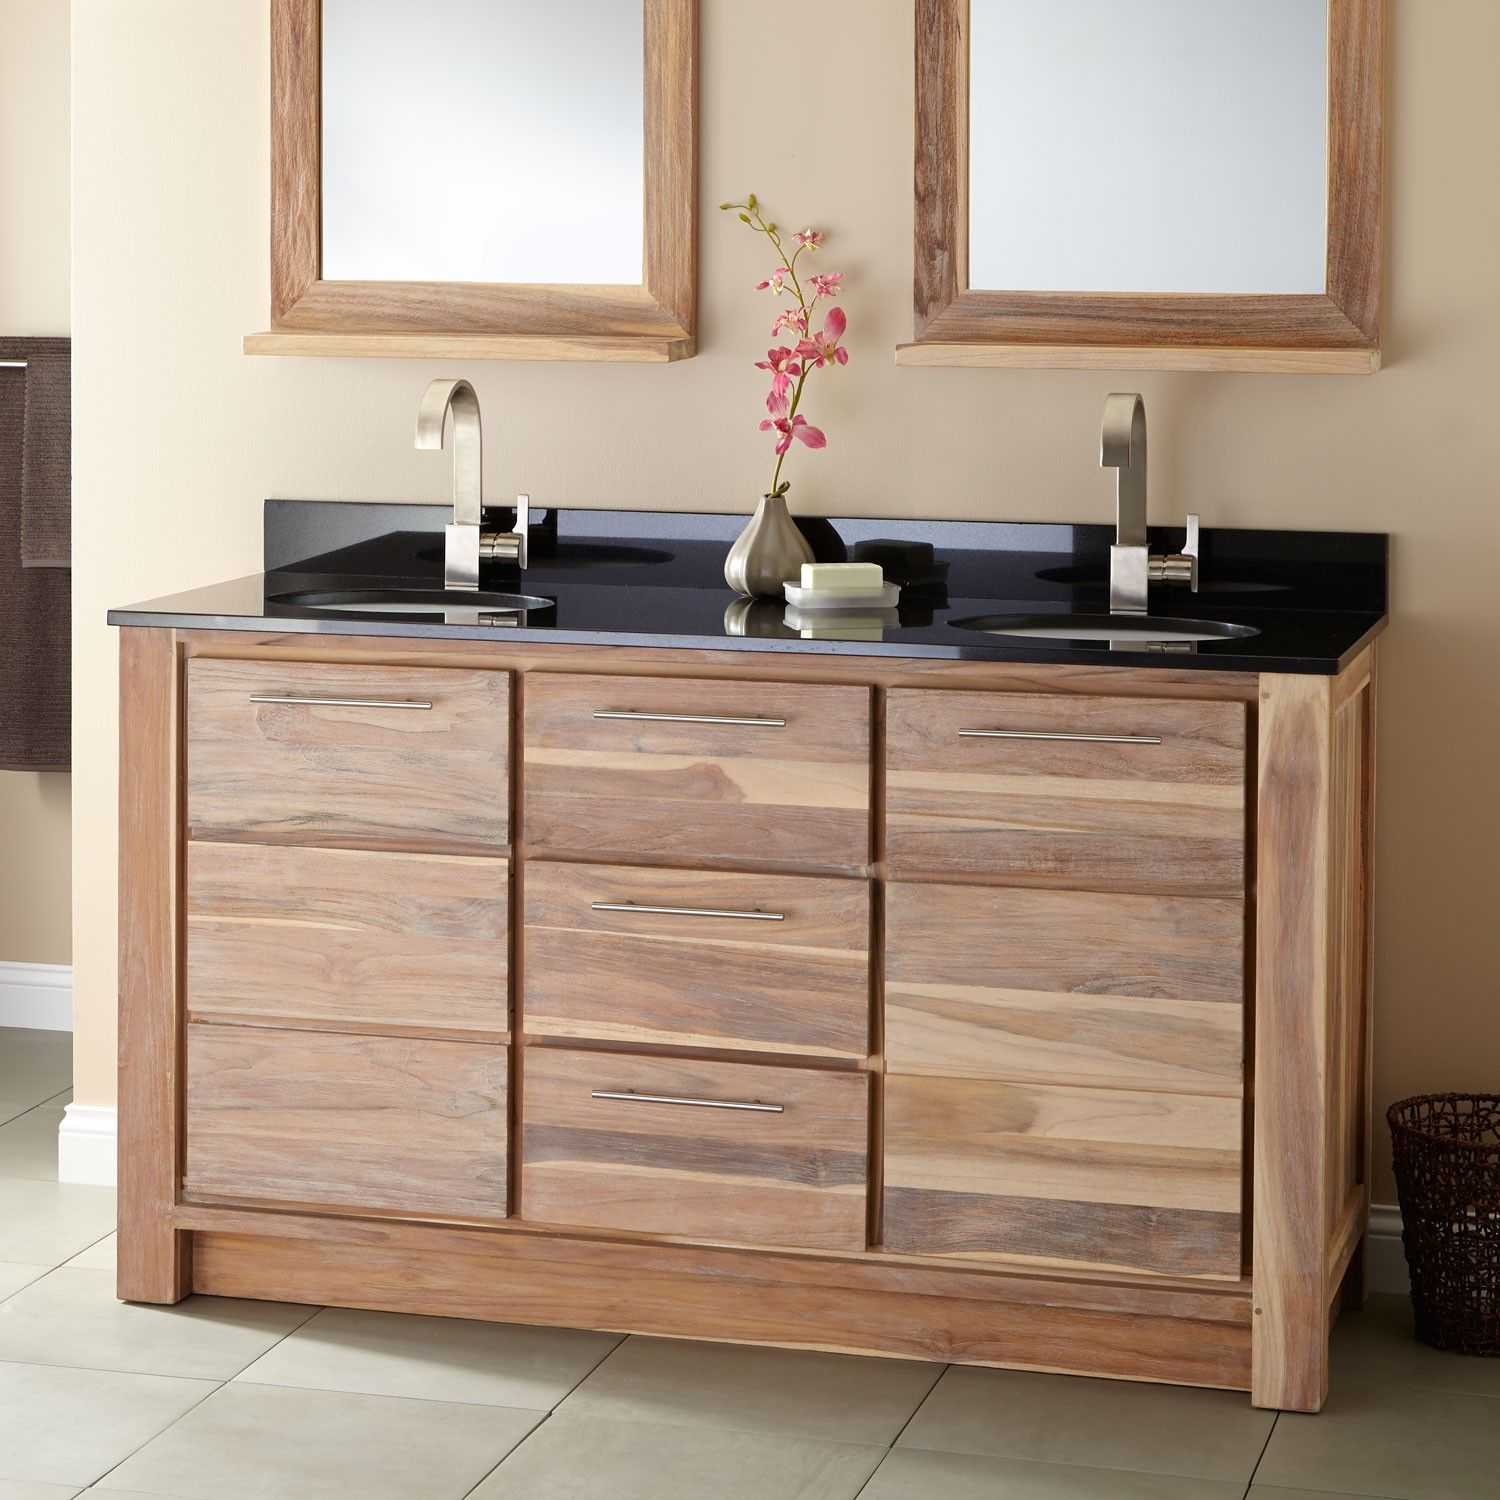 "60"" venica teak double vanity for undermount sinks - whitewash"